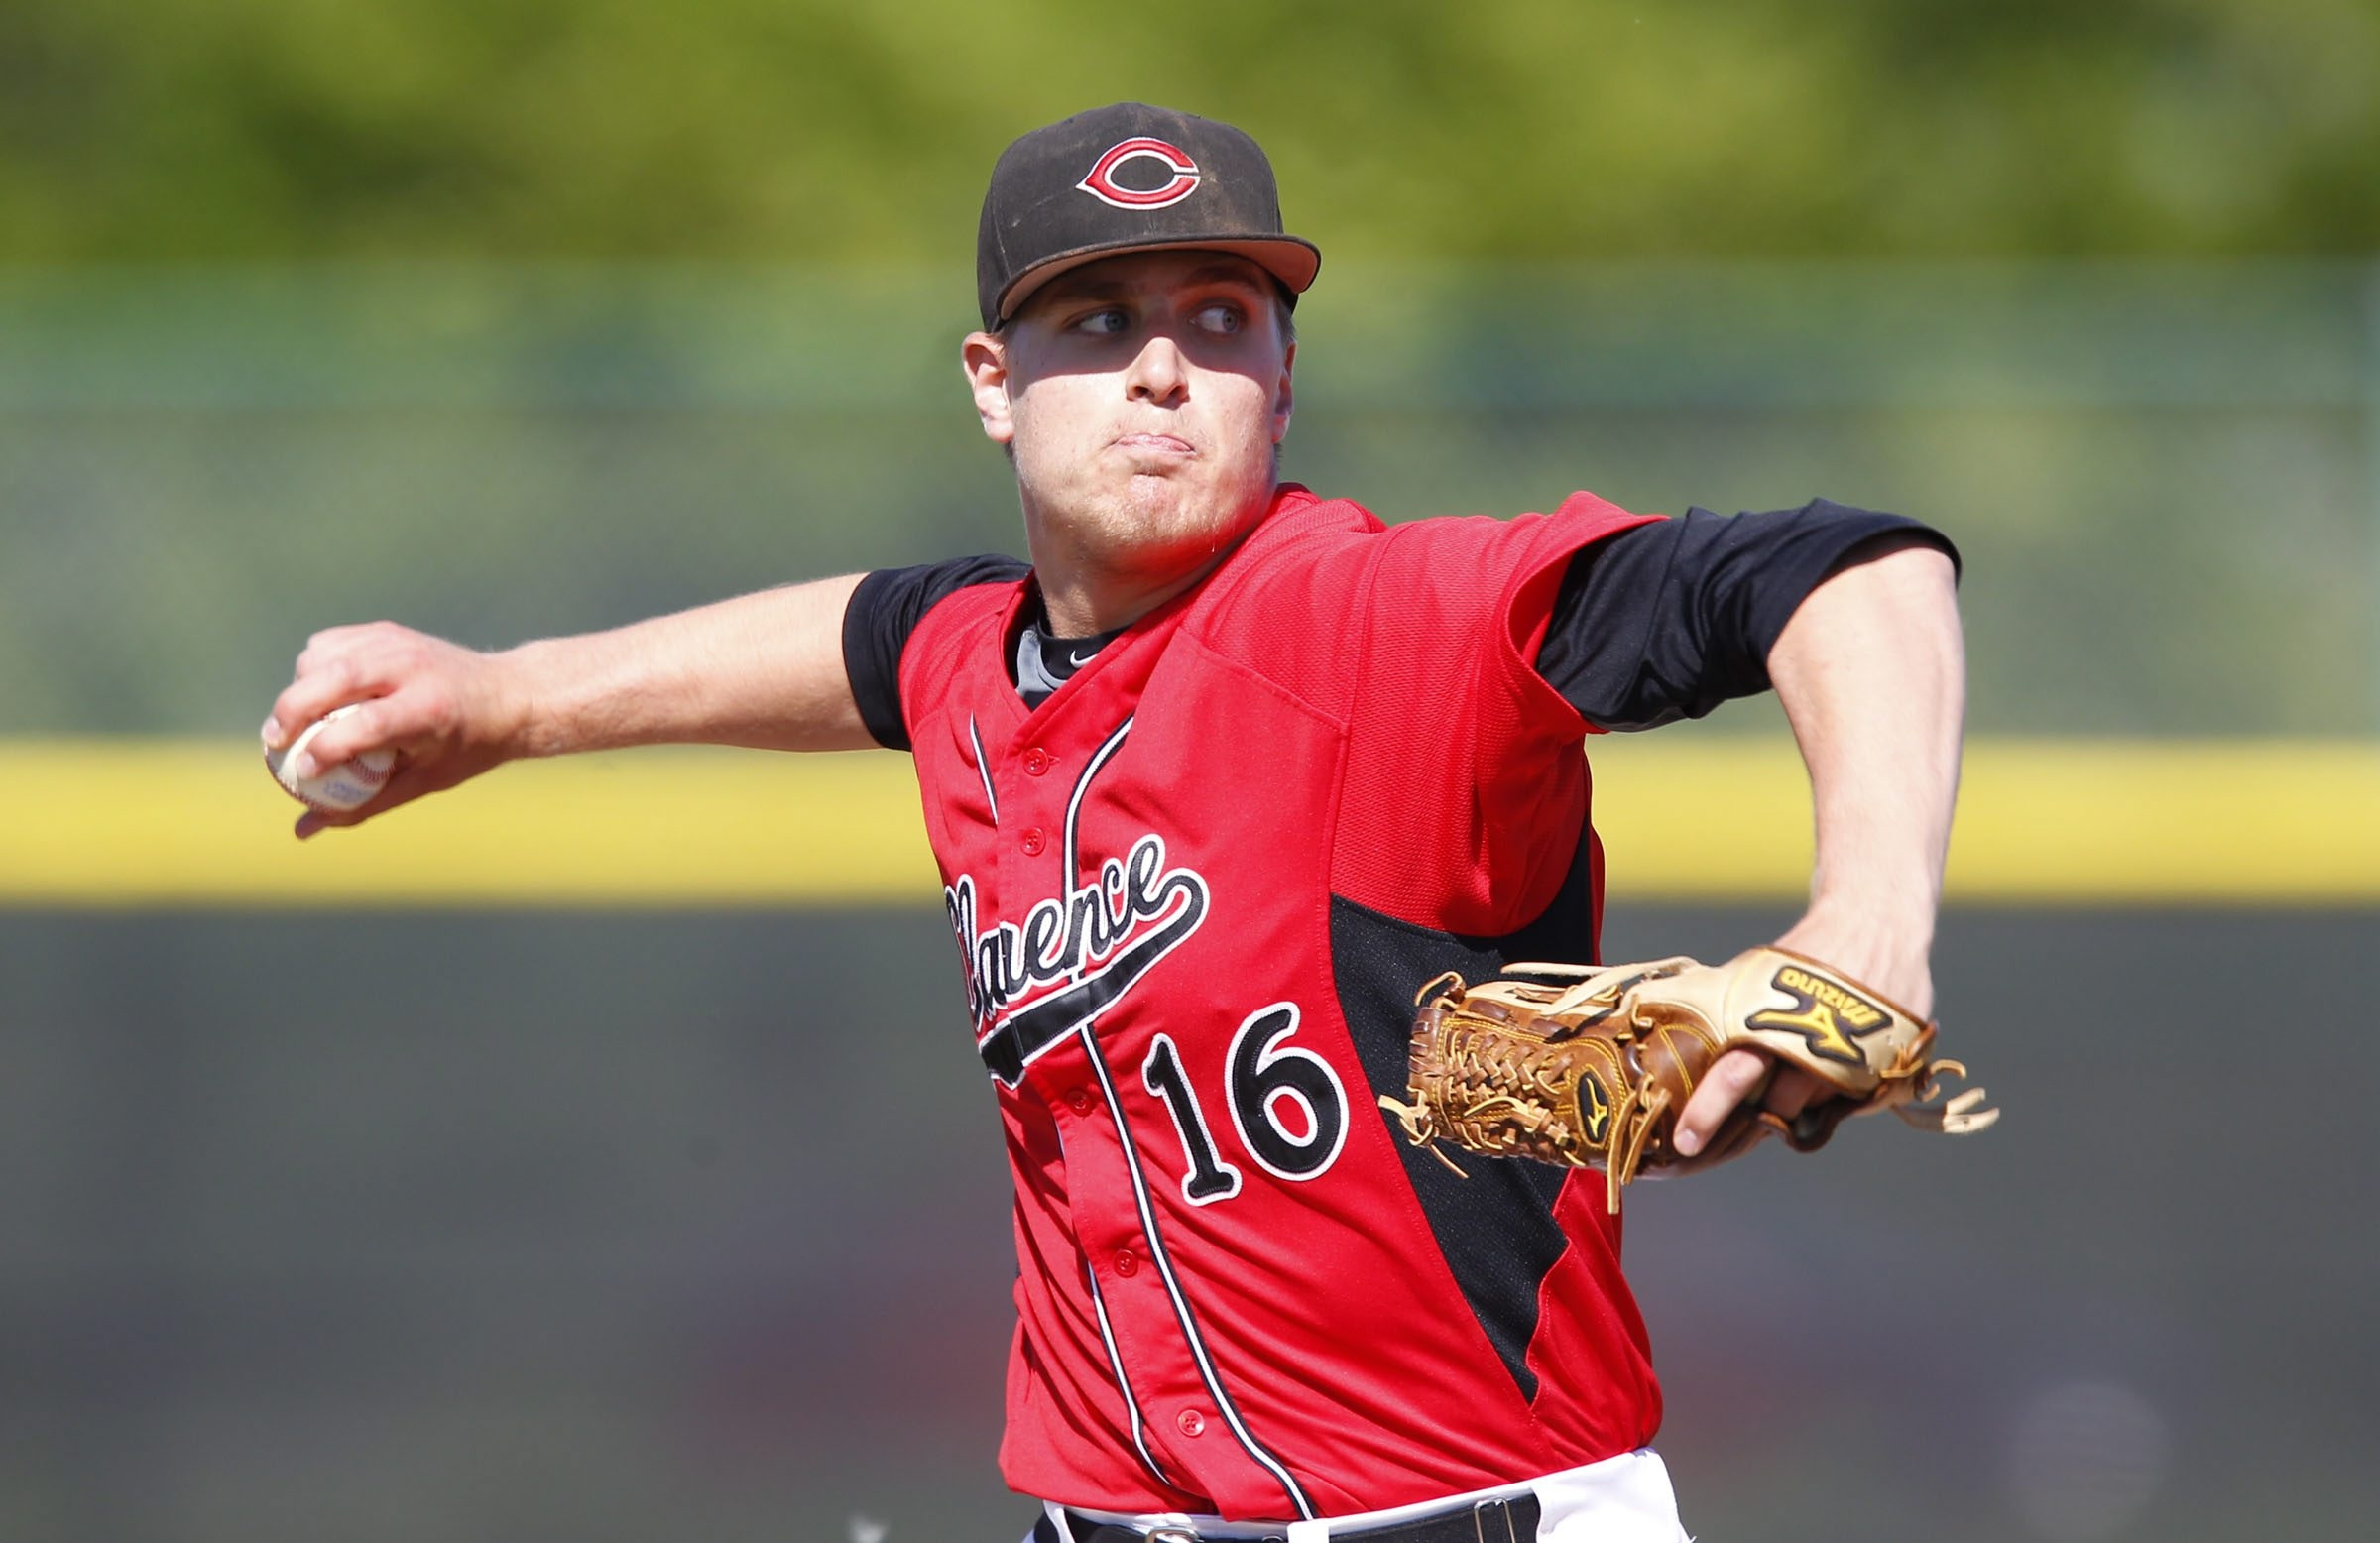 Mark Armstrong will likely be selected today or Friday in the Major League Baseball draft.